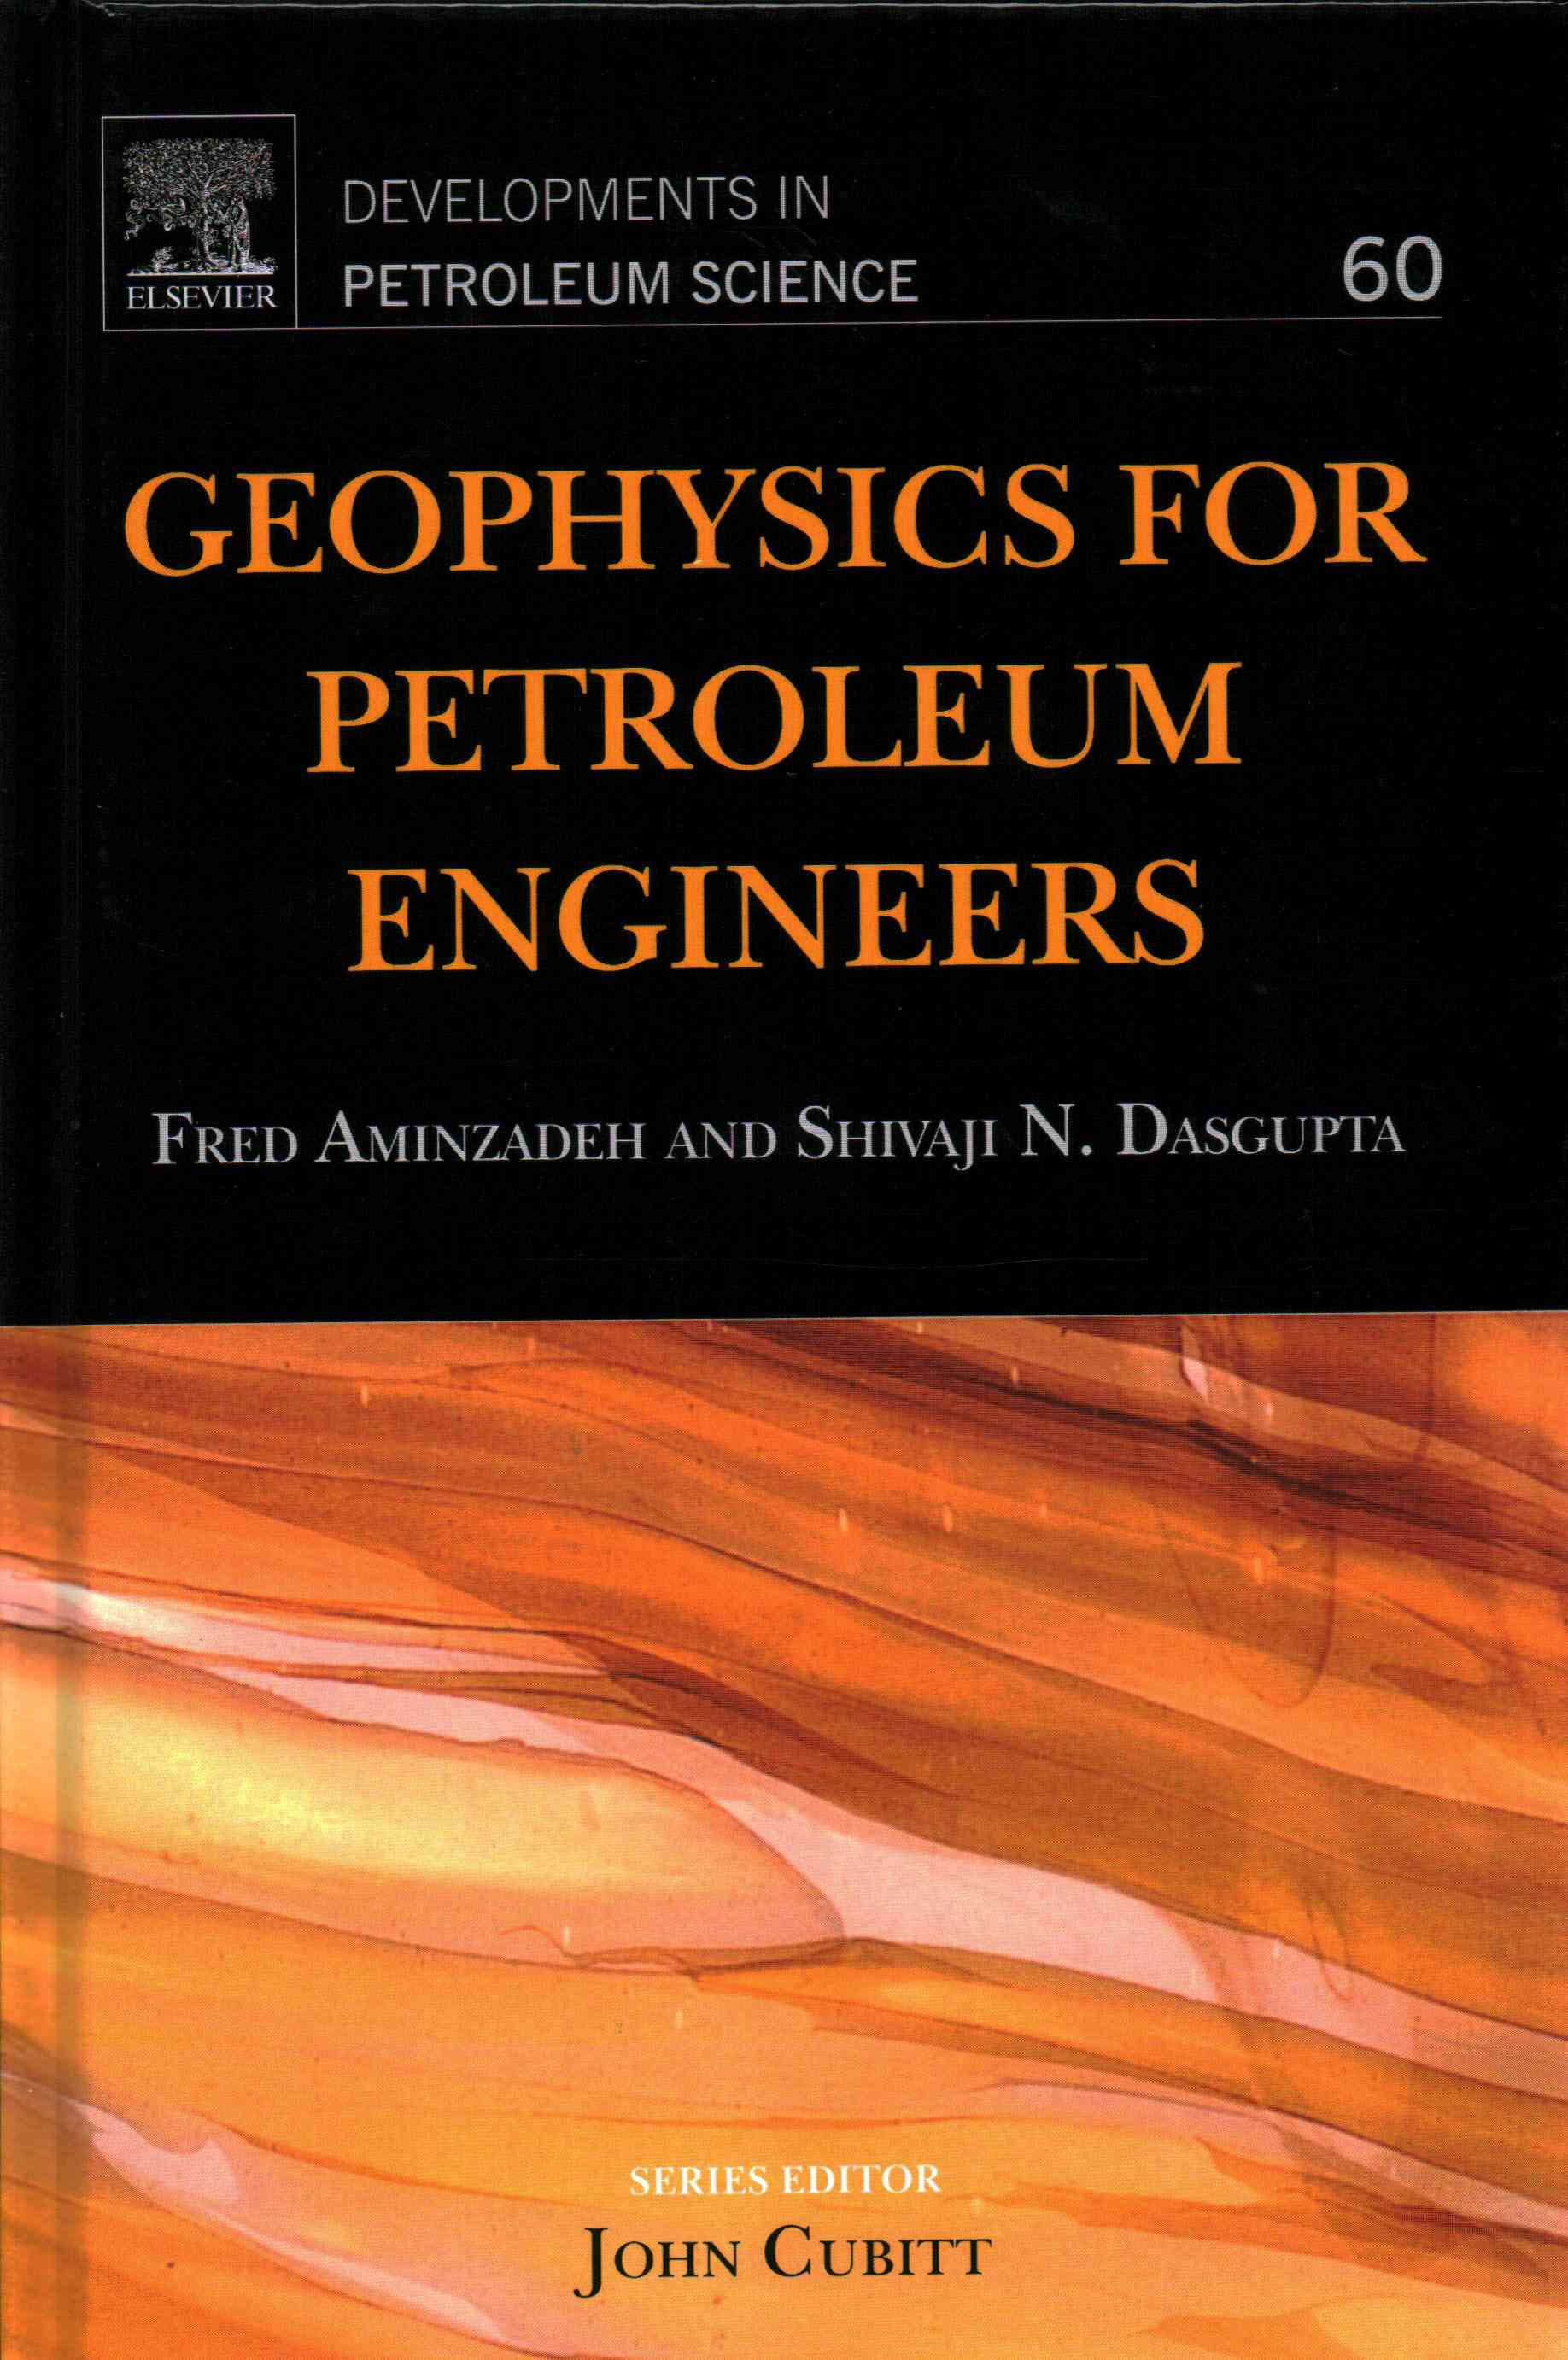 Geophysics for Petroleum Engineers By Aminzadeh, Fred/ Dasgupta, Shivaji N.